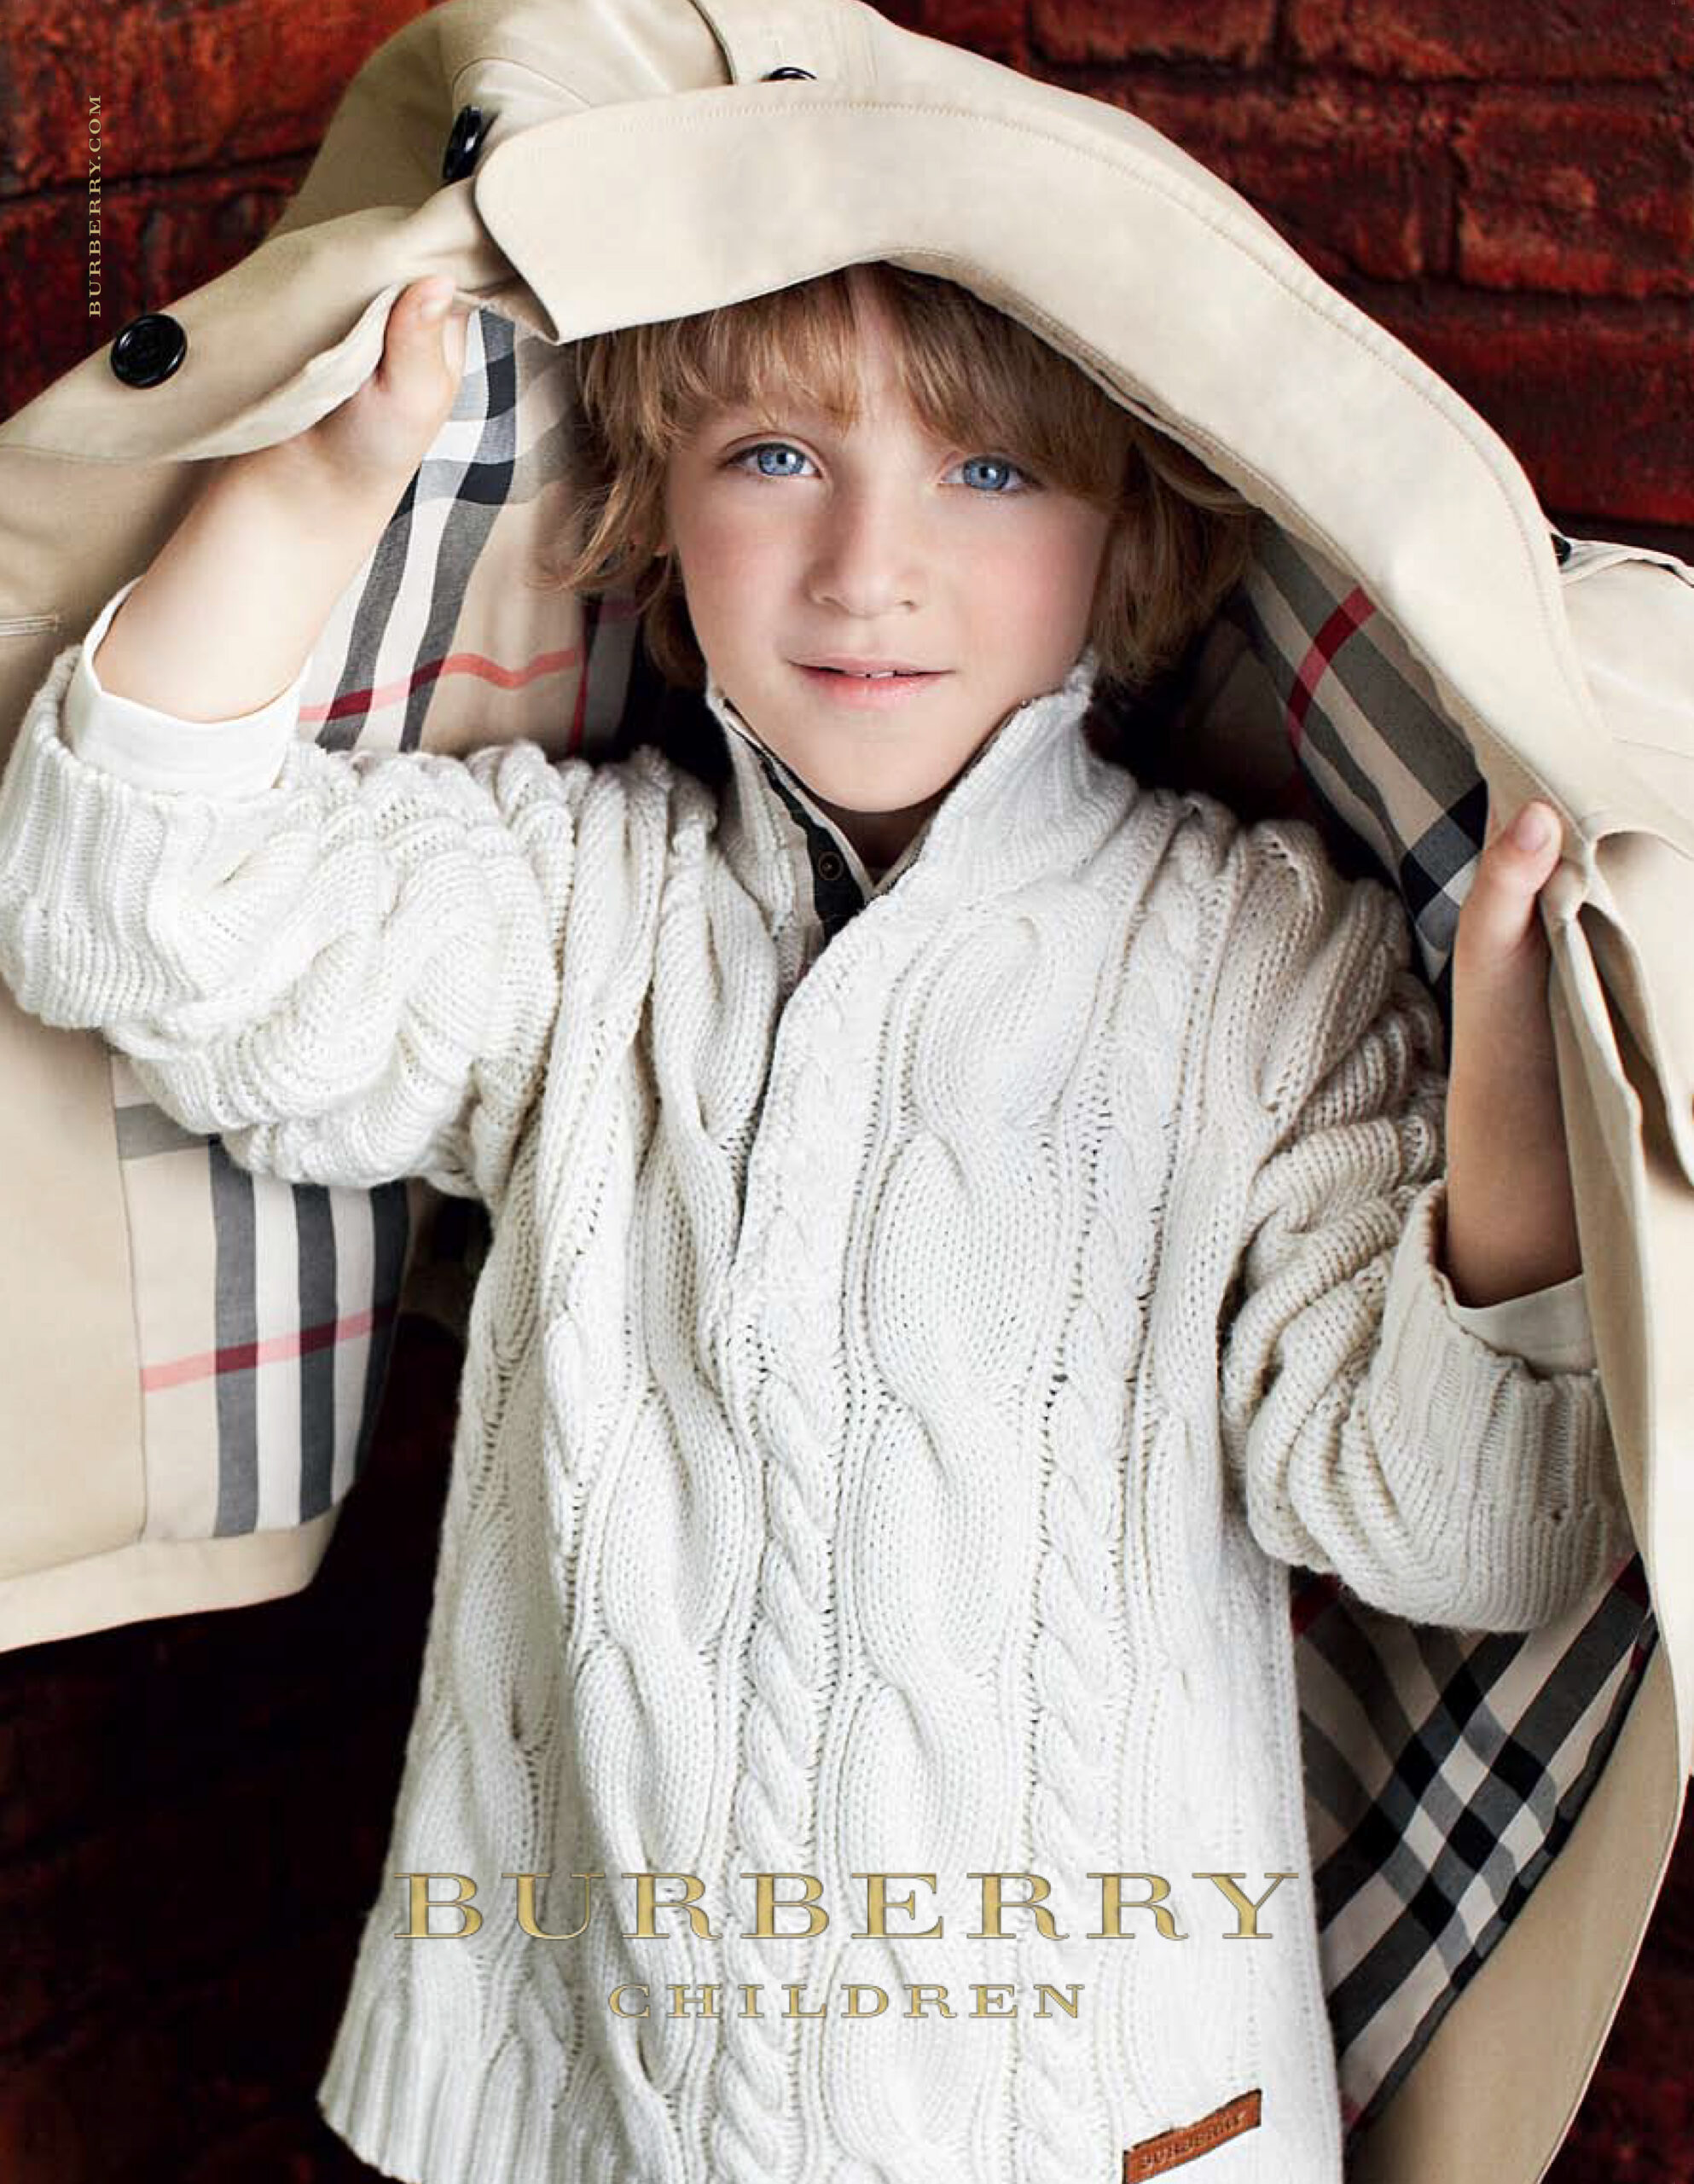 ingrid burberry children AW10_CWIH_Ad_Template-6 def